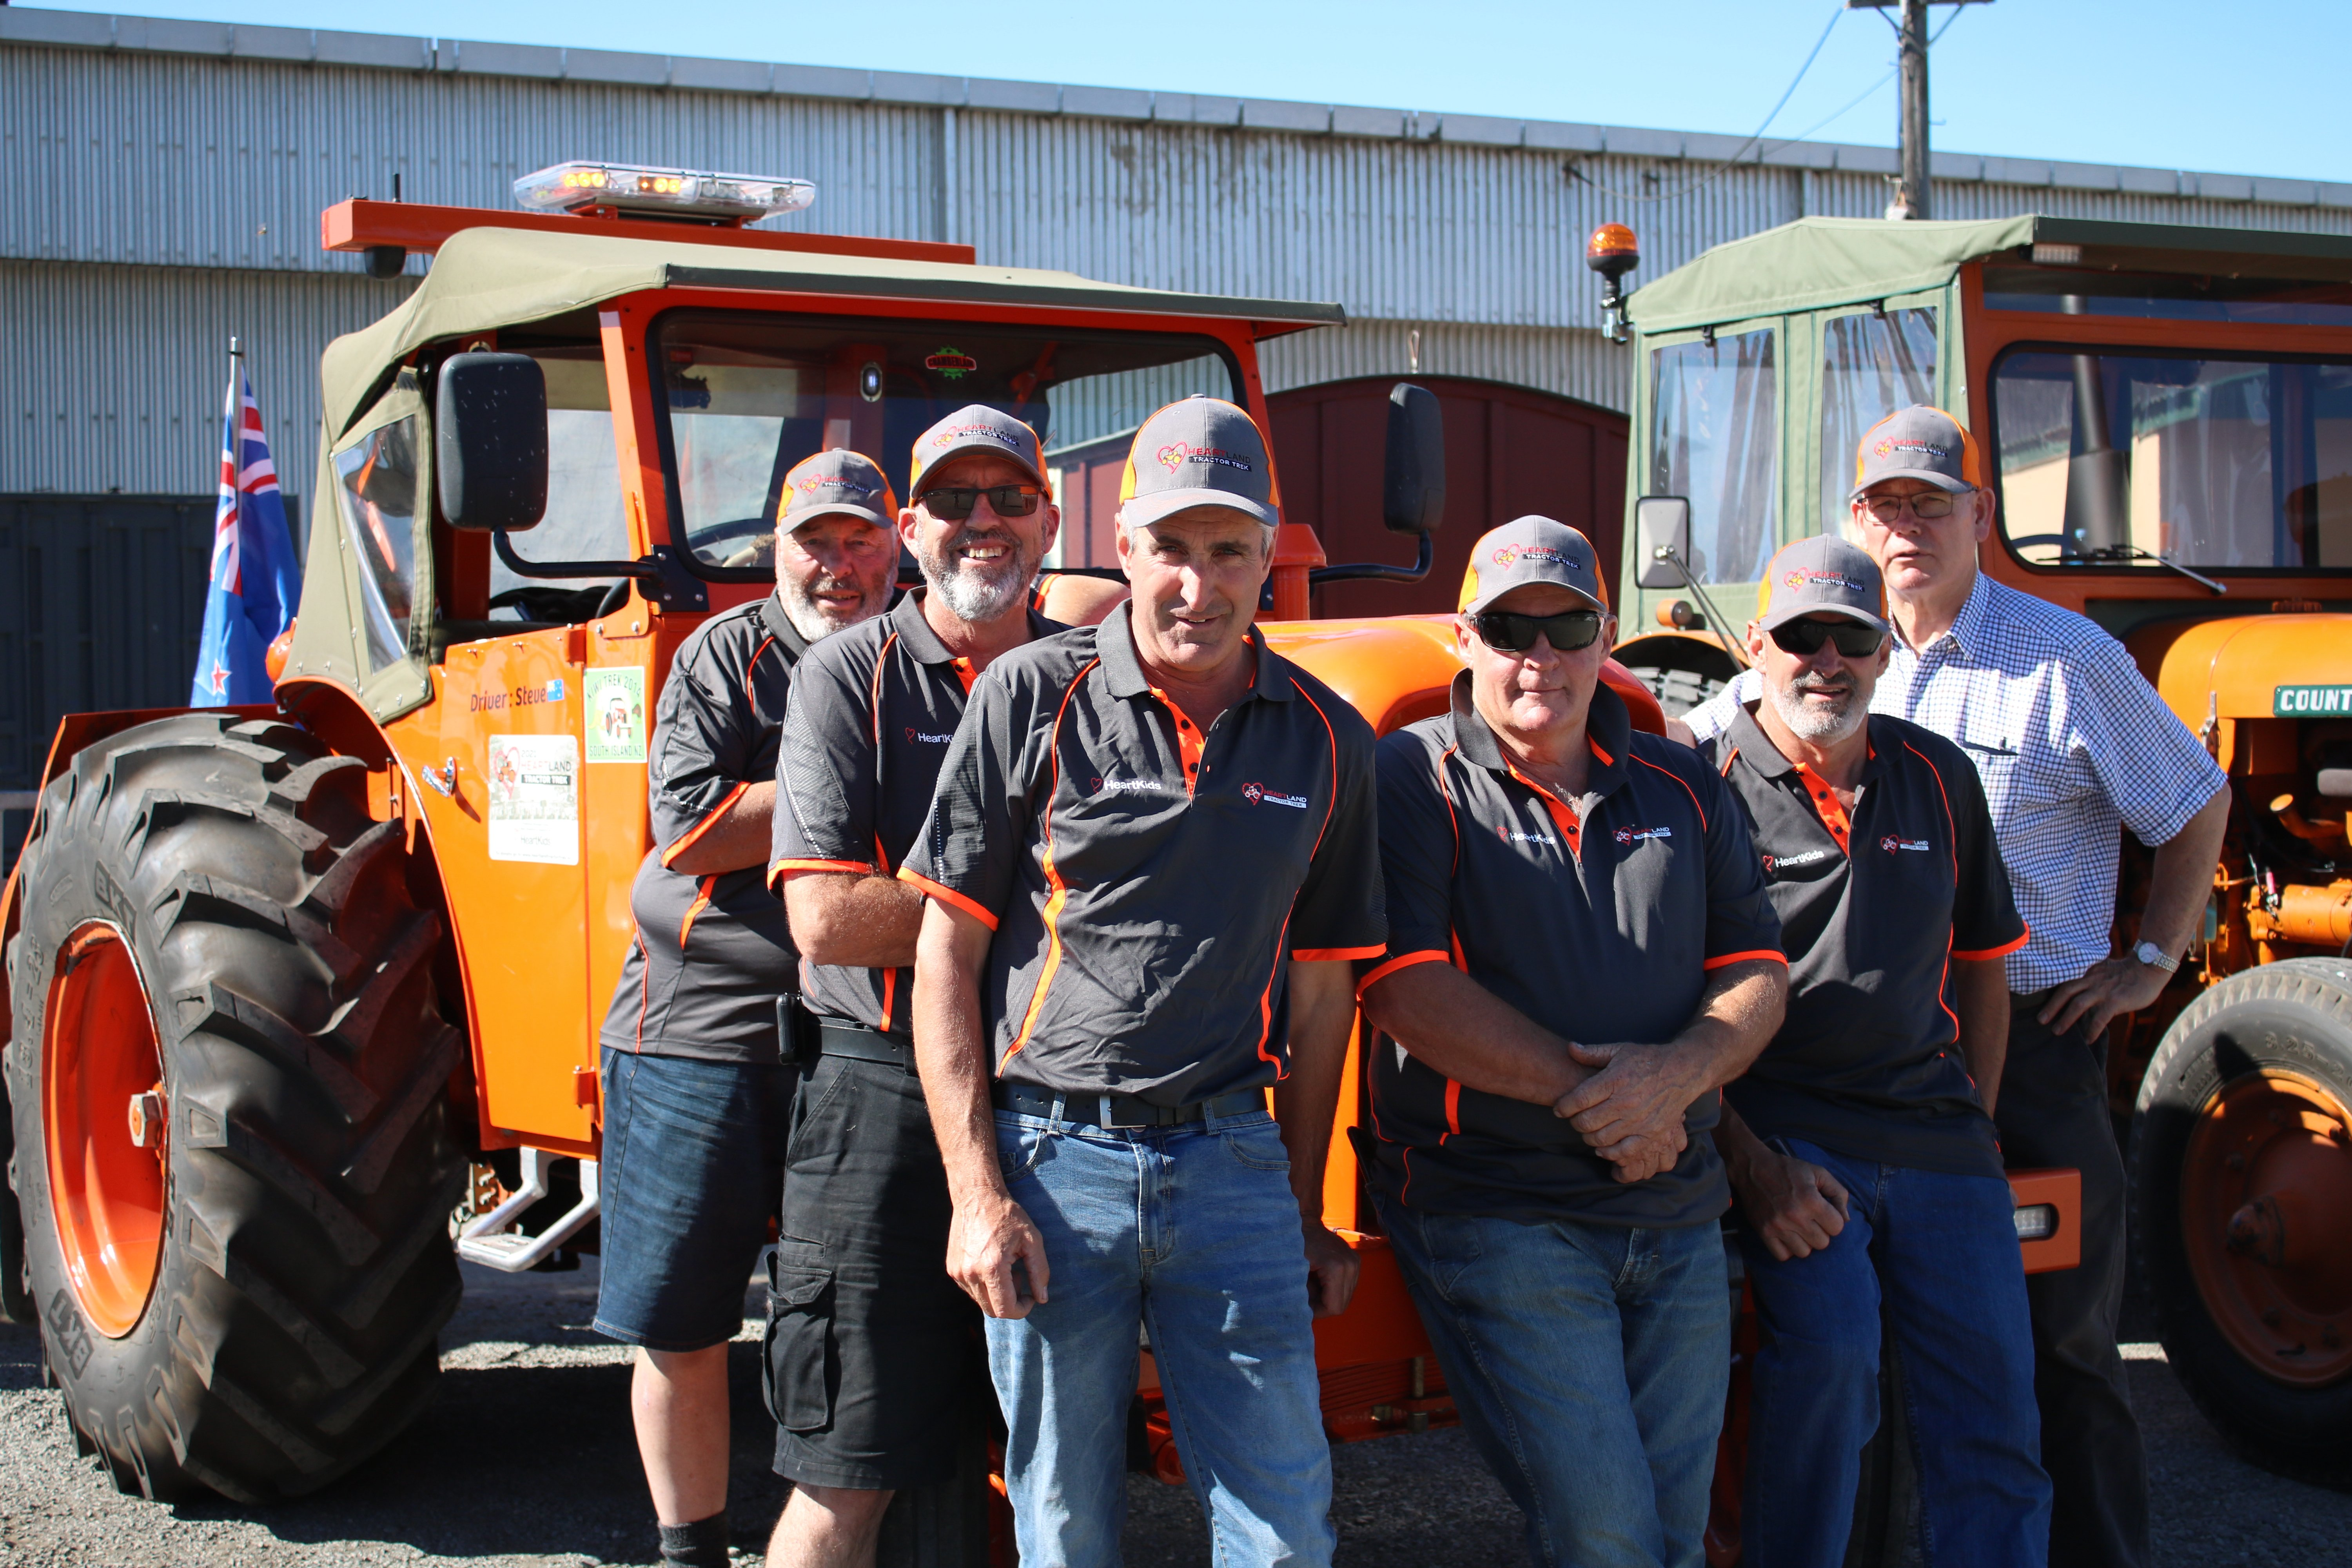 The Heartland Tractor Trek stops in Oamaru yesterday as the group makes its way from New Plymouth...